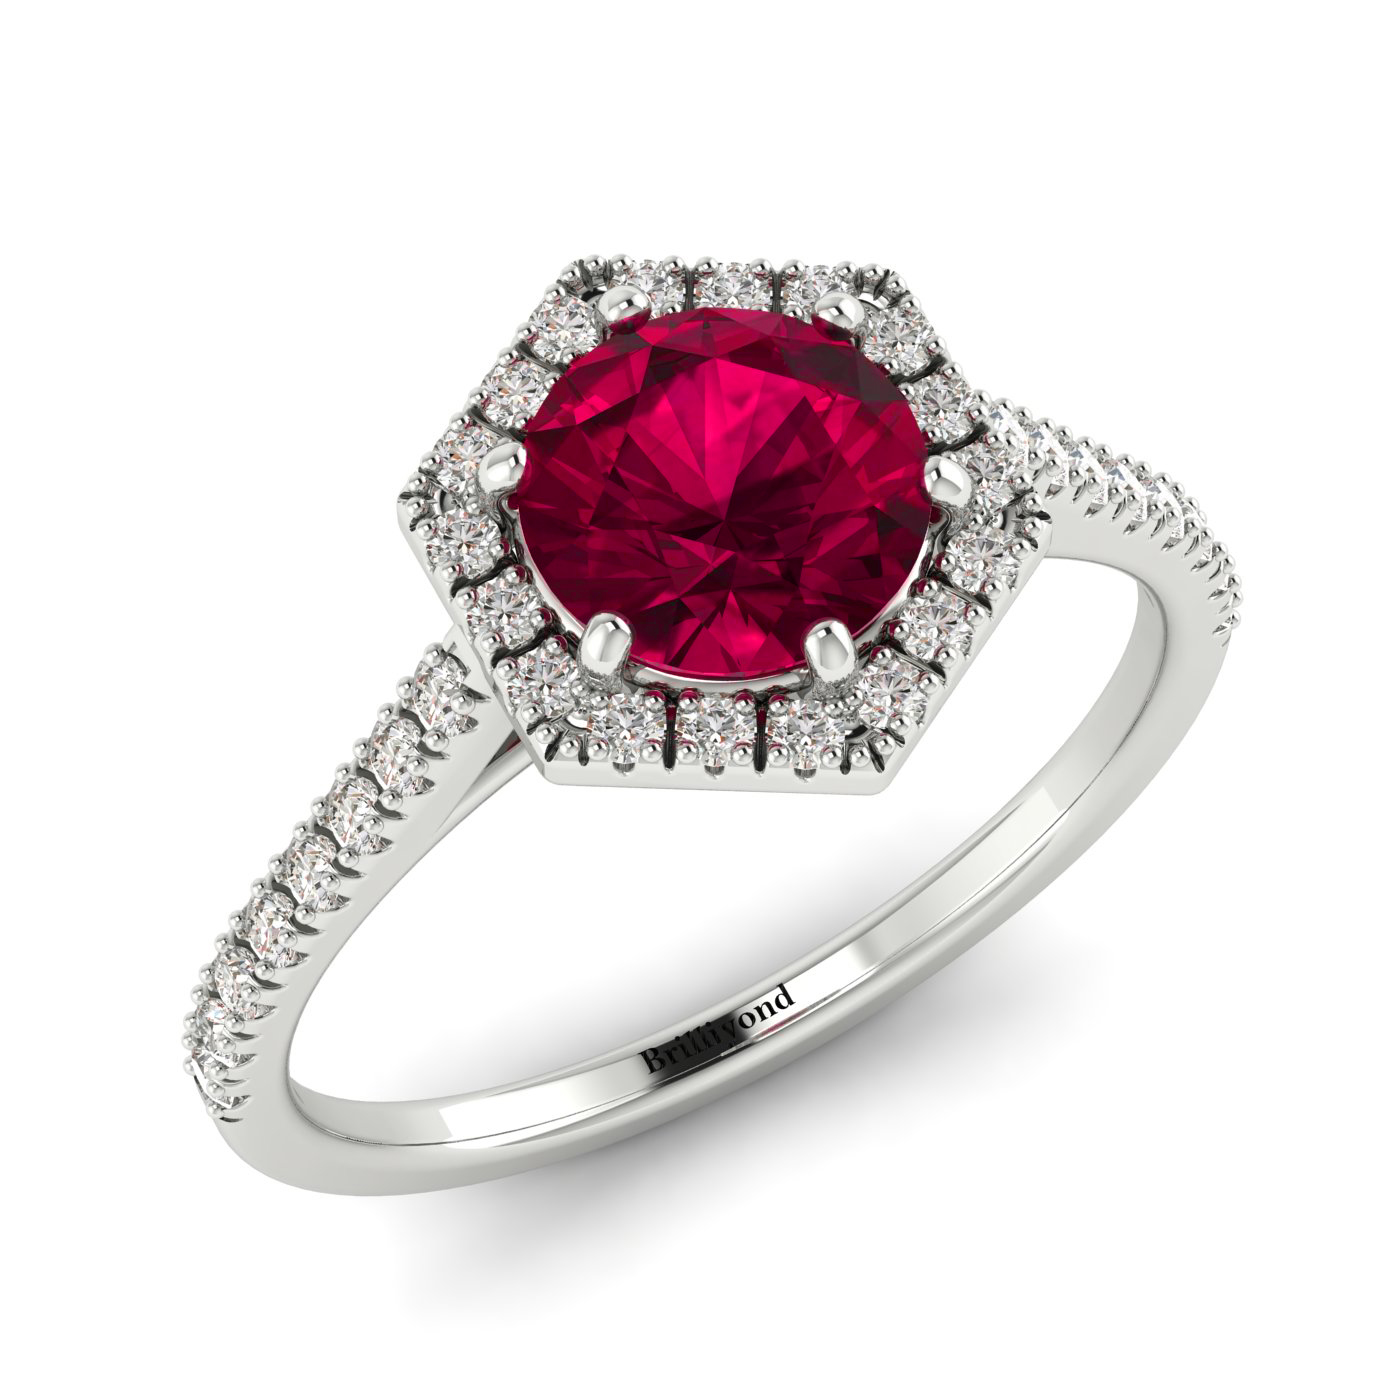 Ruby and Diamonds on 18k White Gold Band